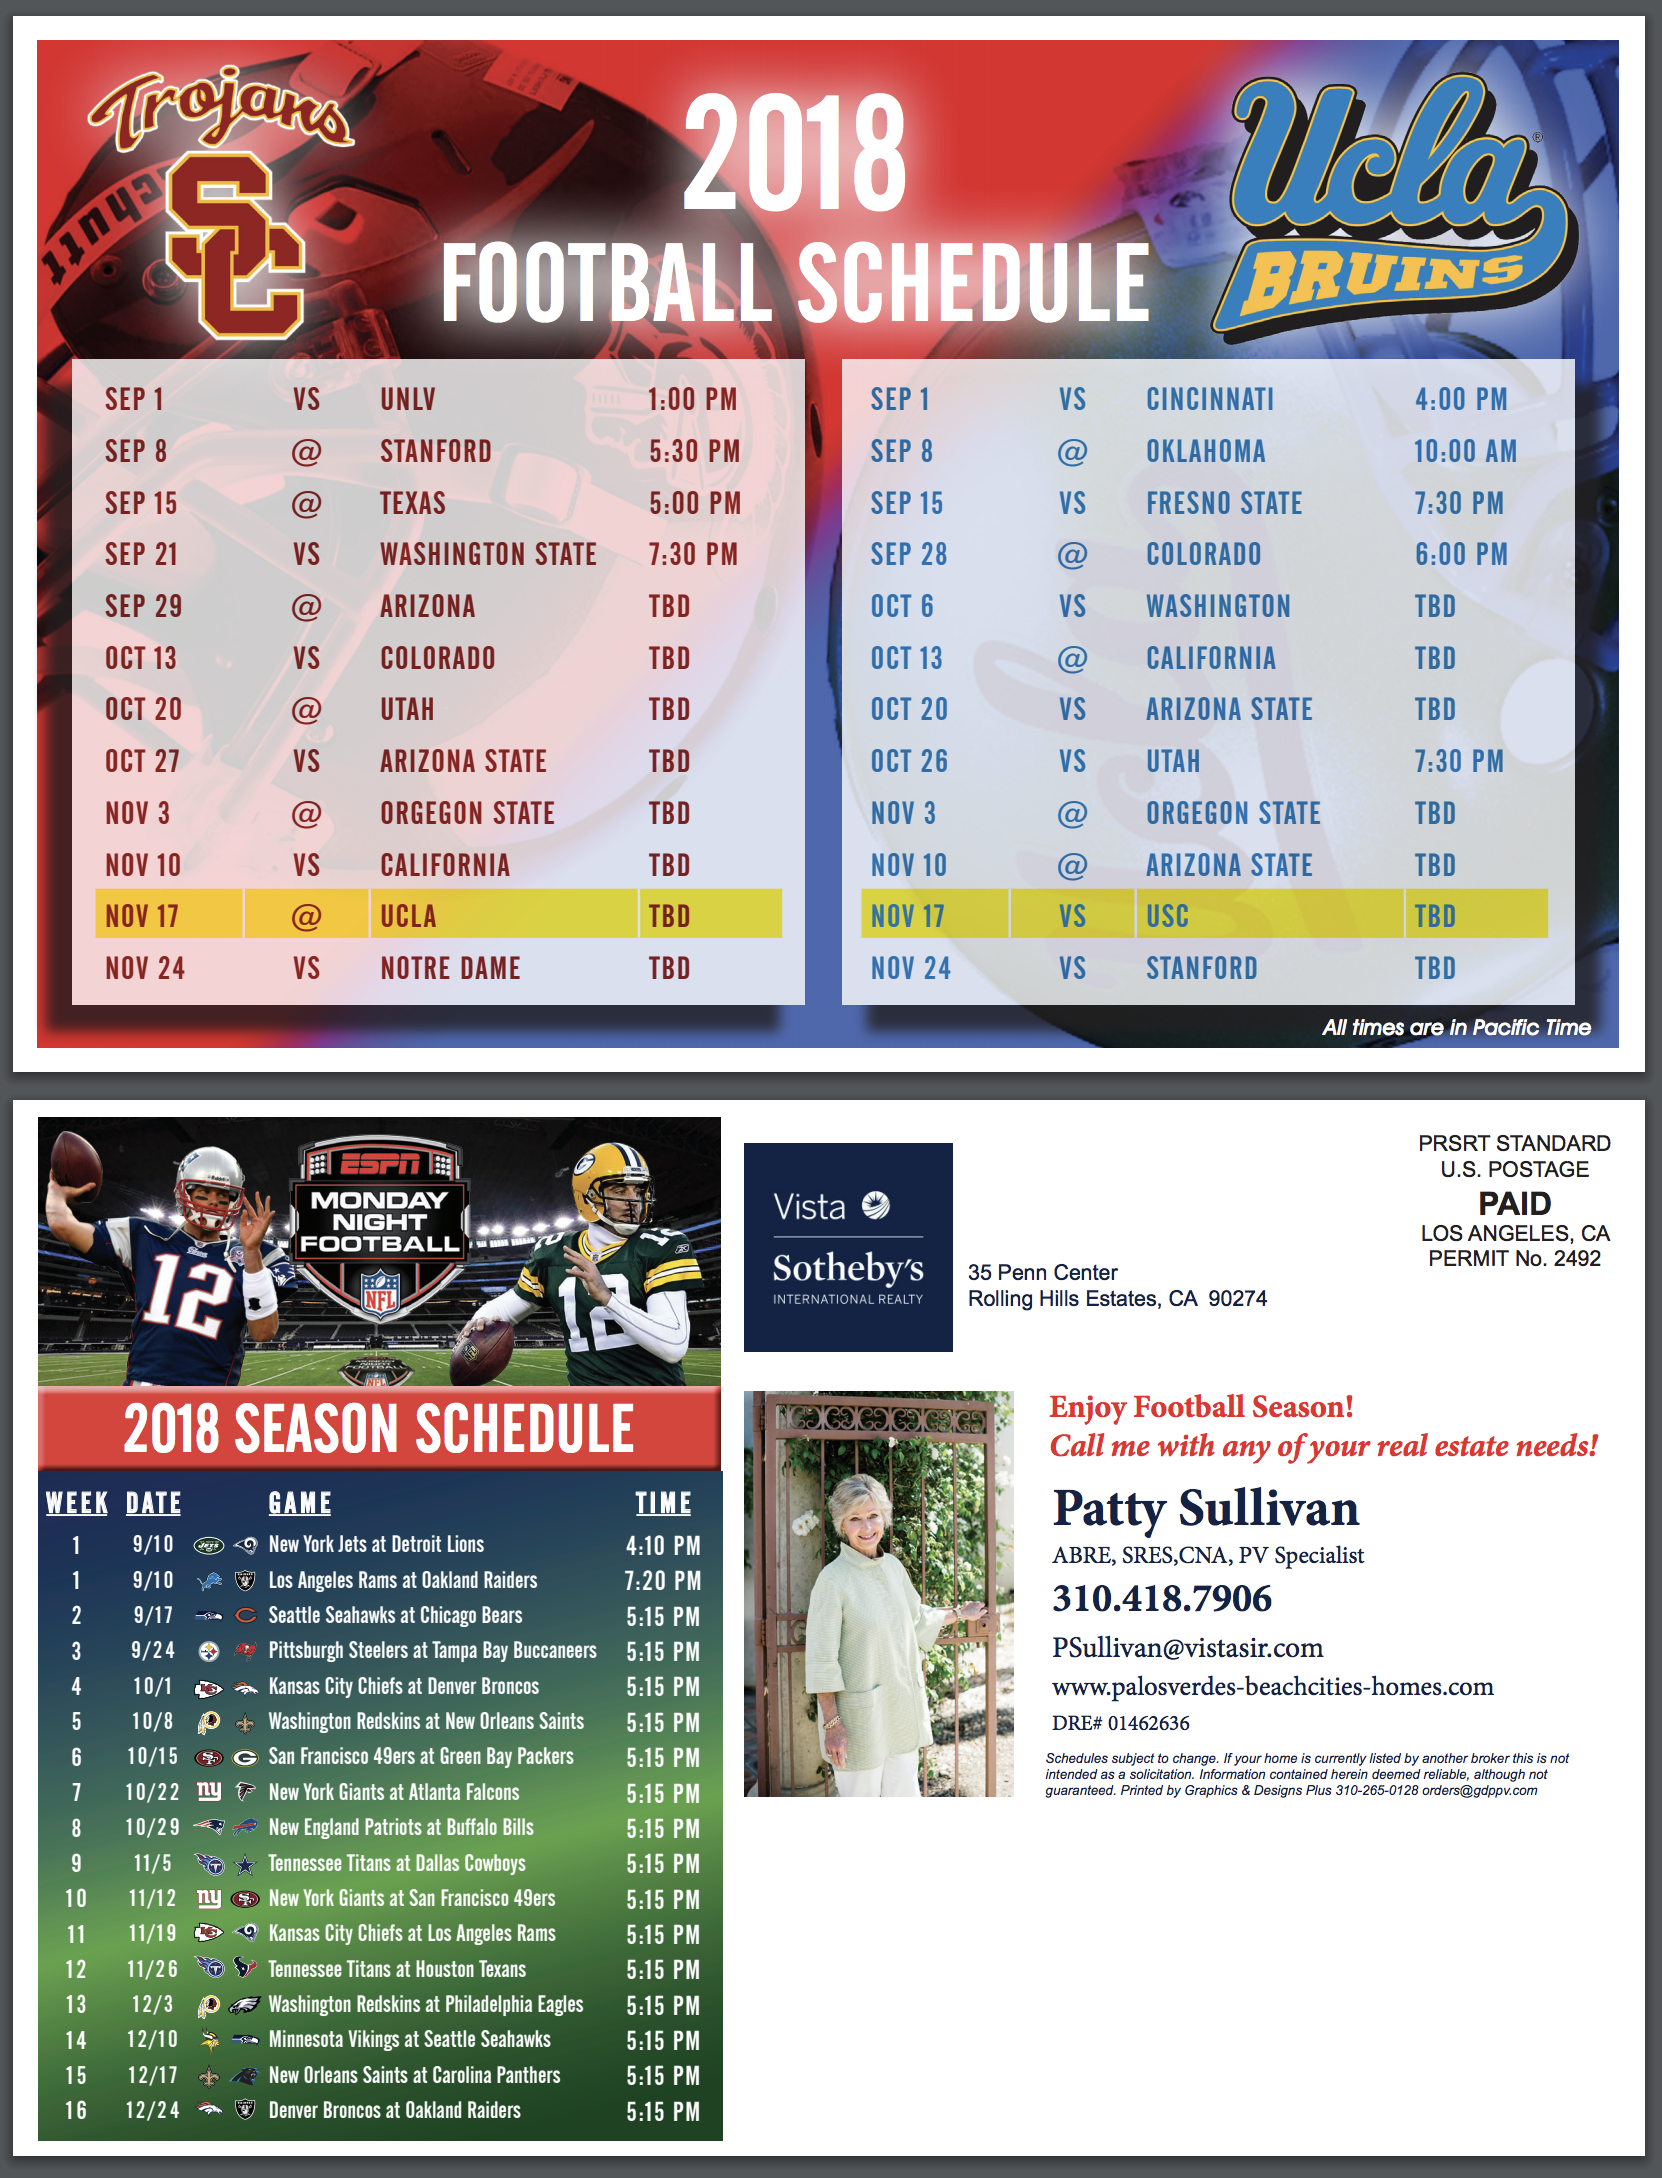 2019 Usc Football Schedule USC & UCLA & Monday Night Football Schedules for 2018 2019